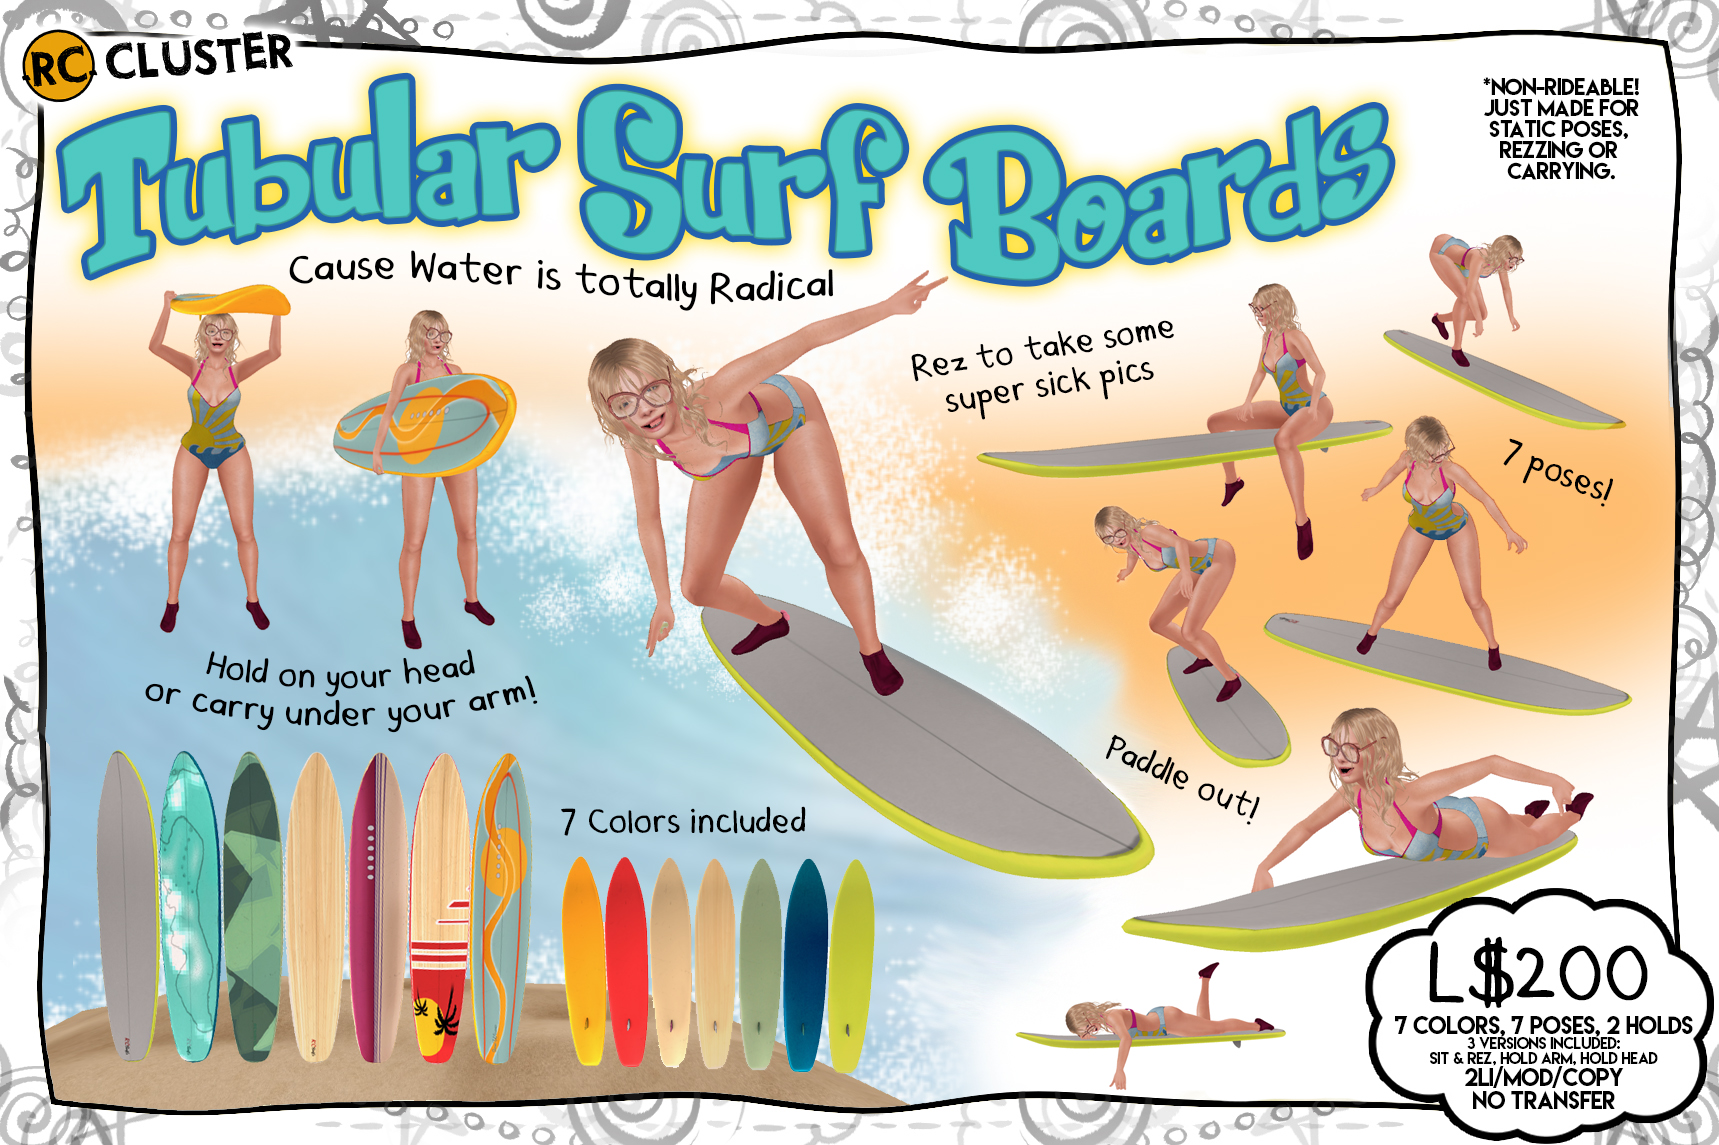 -RC- Cluster - Tubular Surf Boards